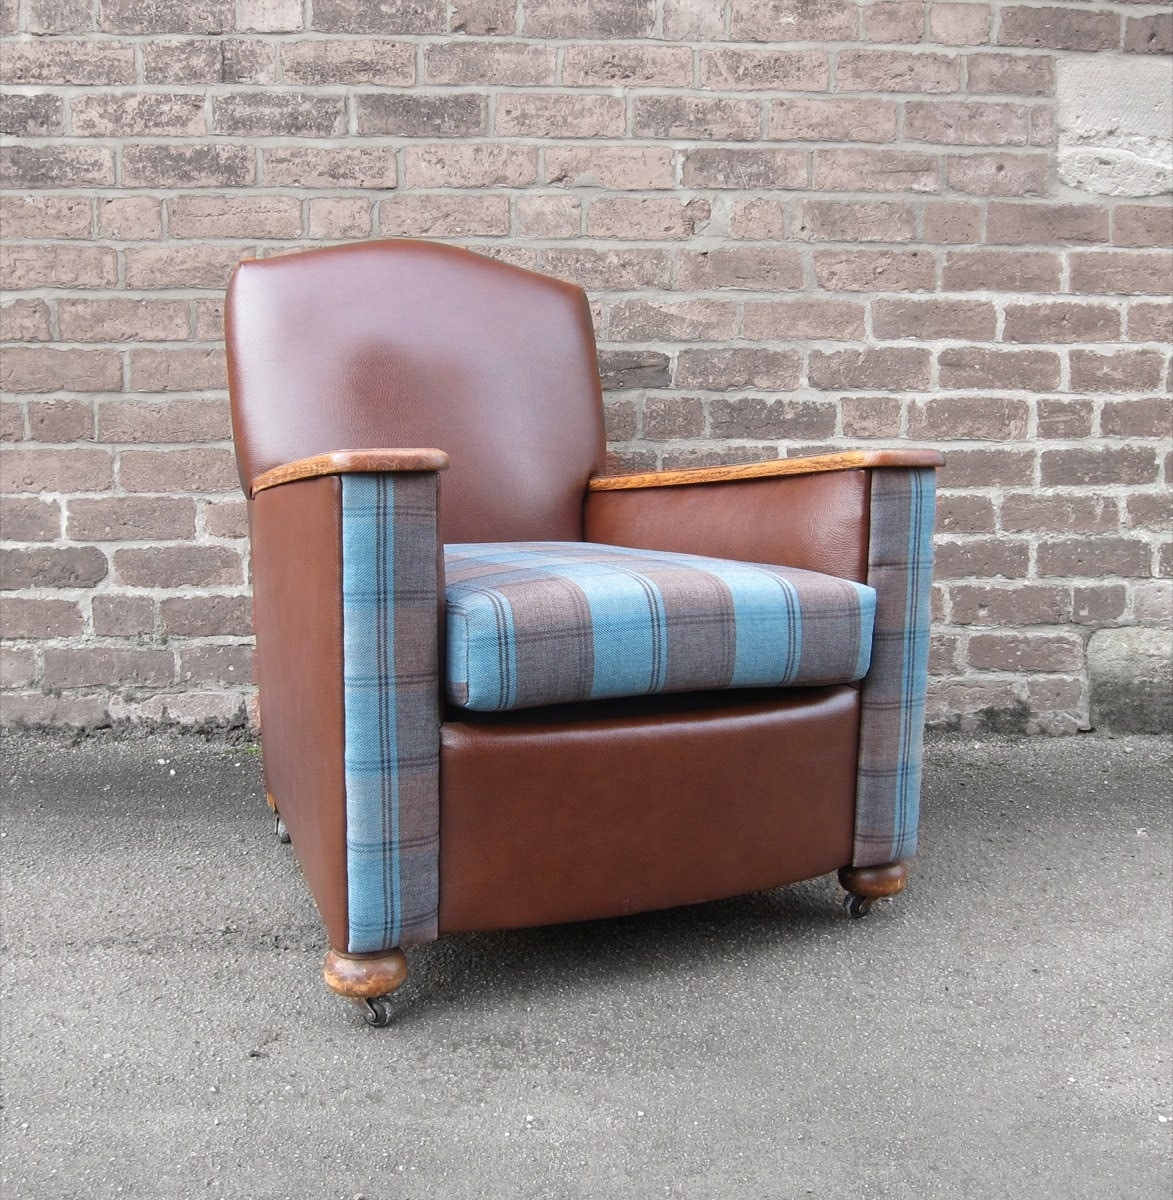 Stunning 1930s art deco lounge arm fireside chairs newly upholstered in a soft brown saddle tan - Deco lounge grijs en beige ...